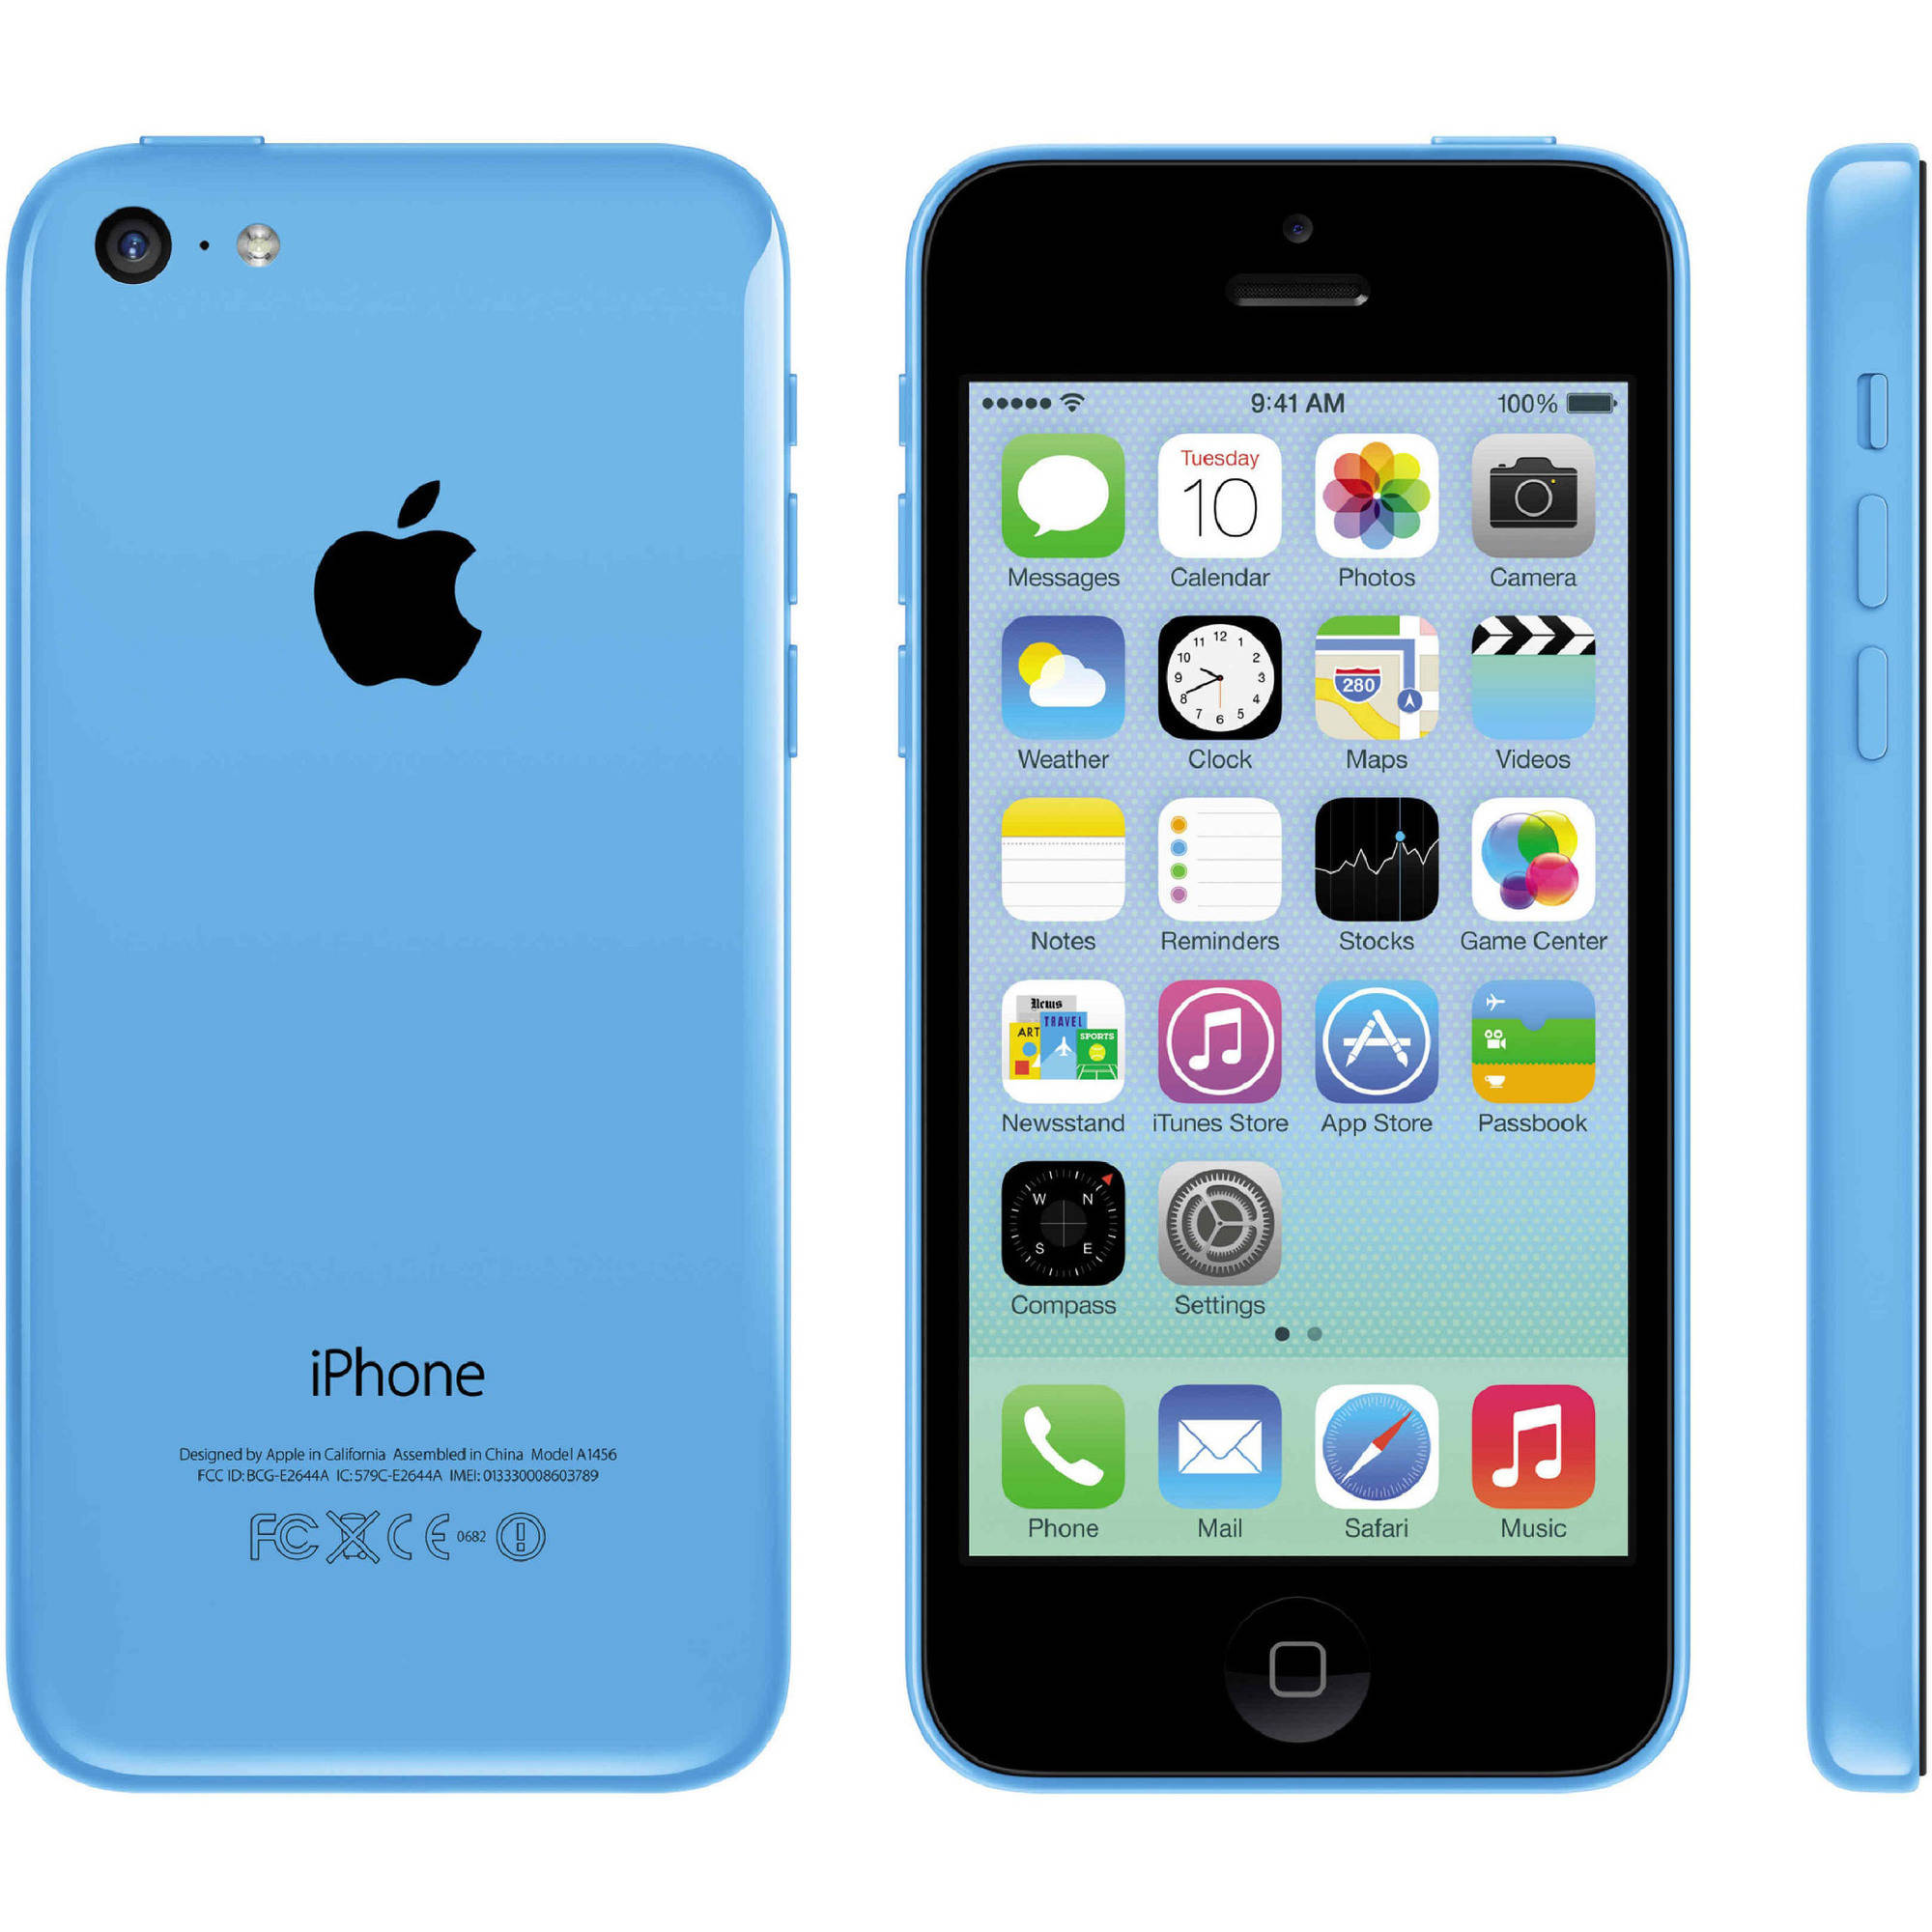 Apple iPhone 5C 16GB Unlocked GSM Phone, Blue, Manufactured Refurbished